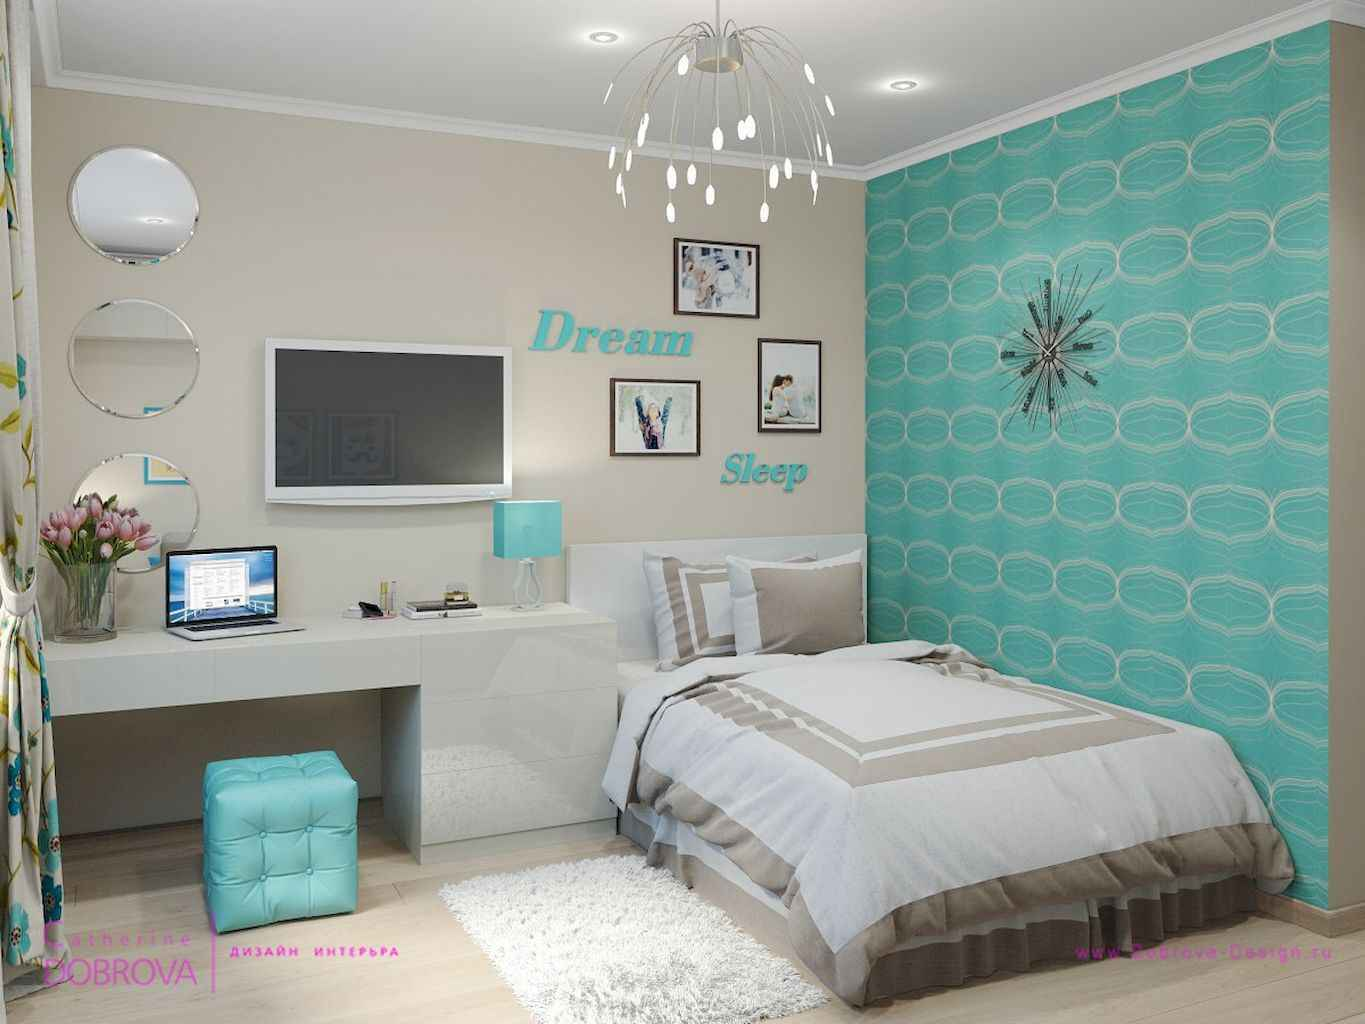 Simply ideas bedroom for kids (13)